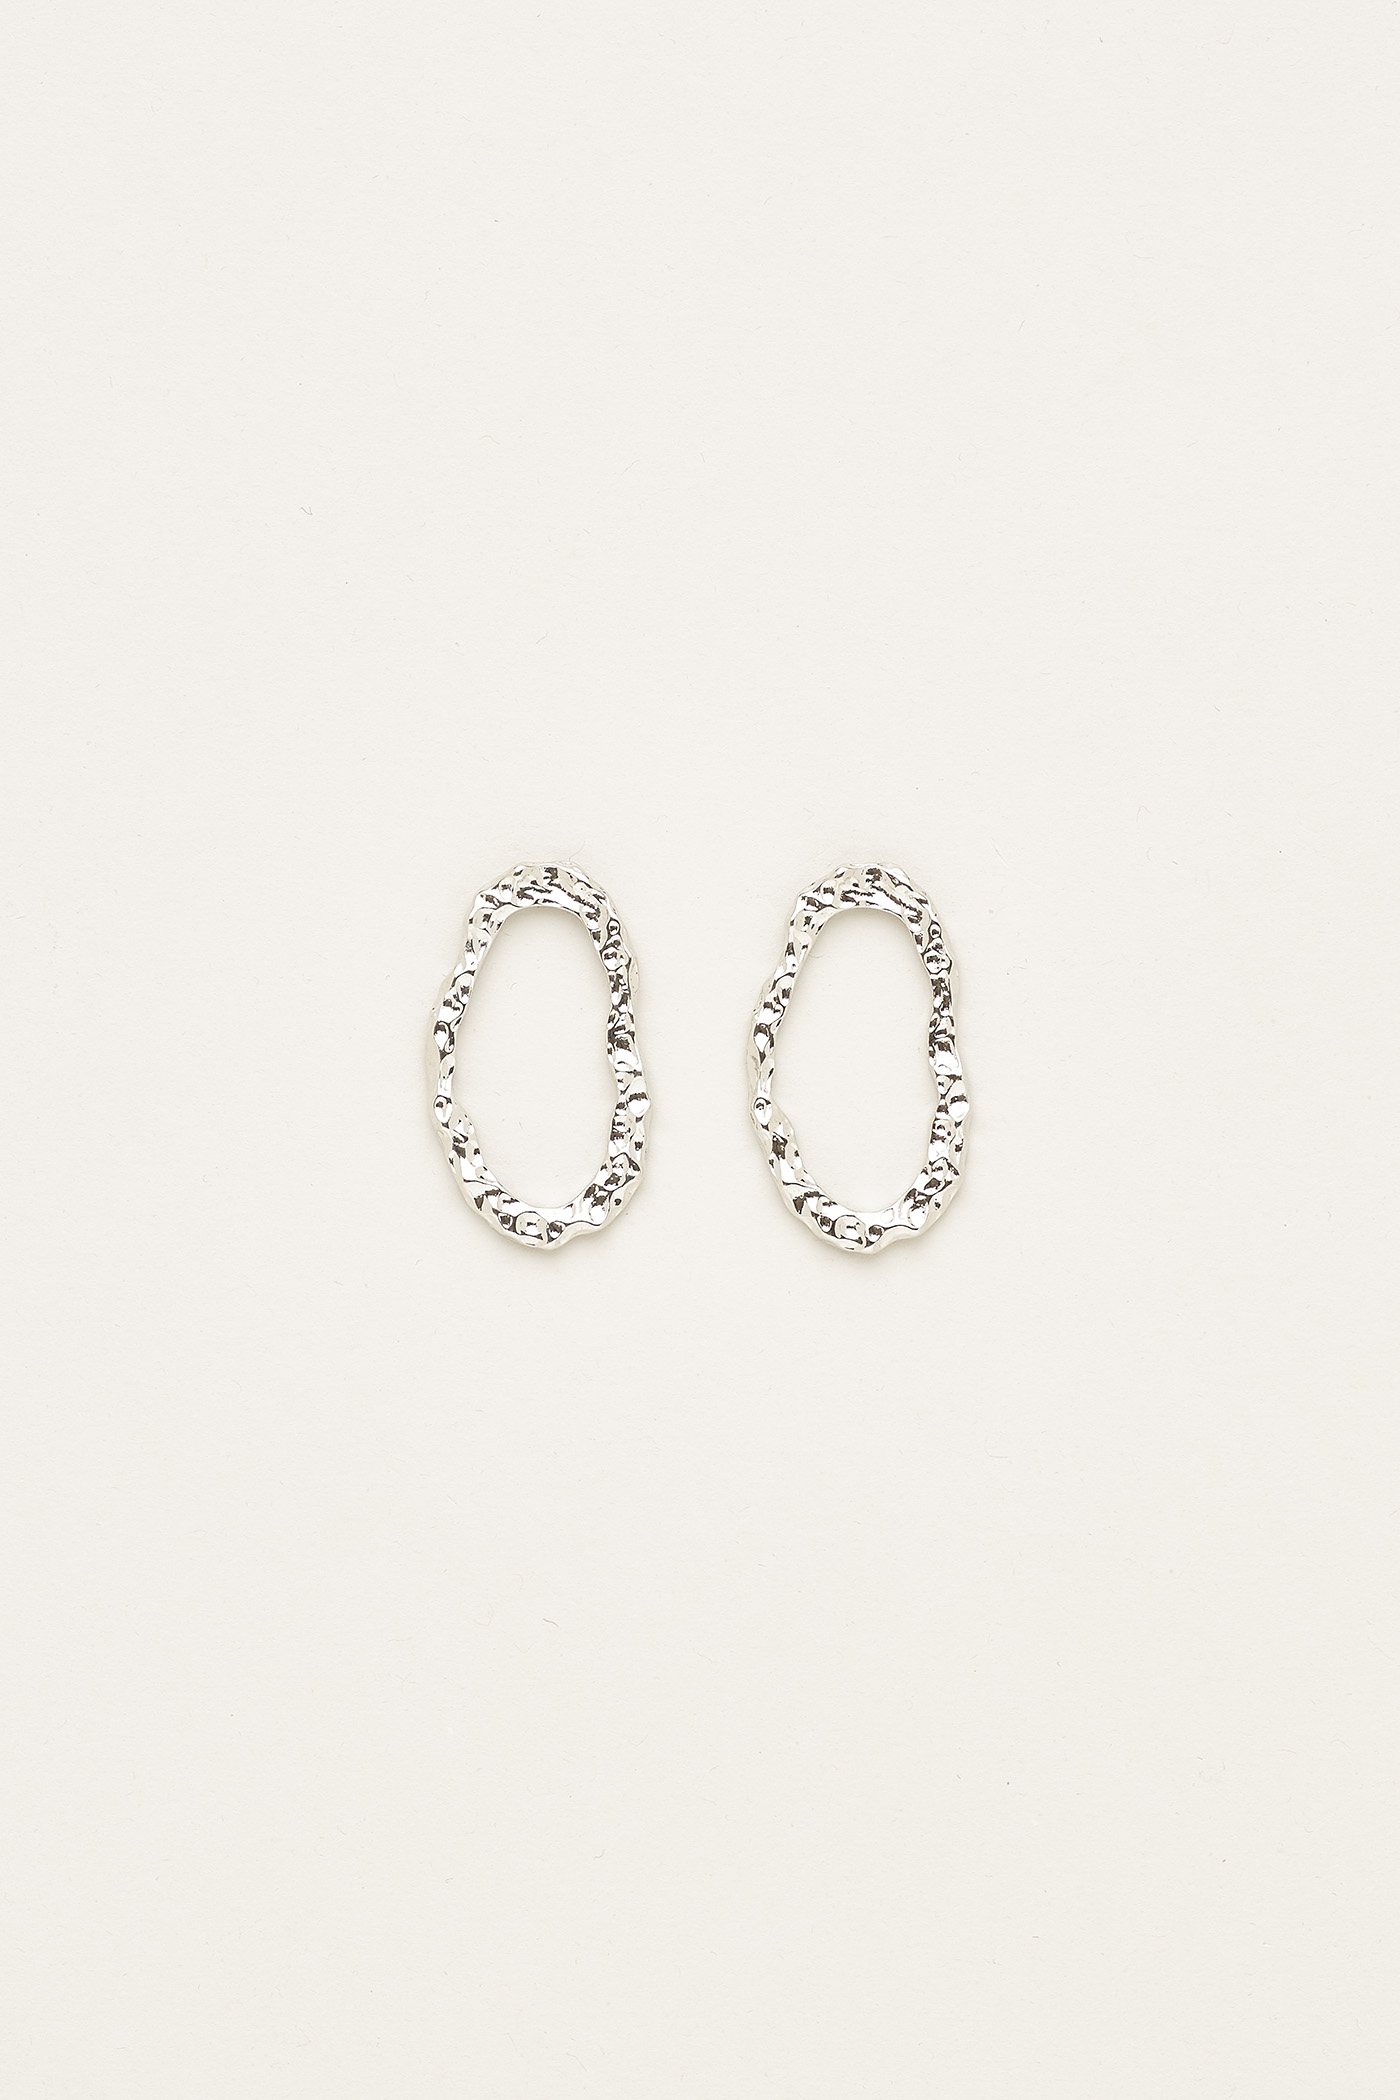 Halley Oval Textured Earrings